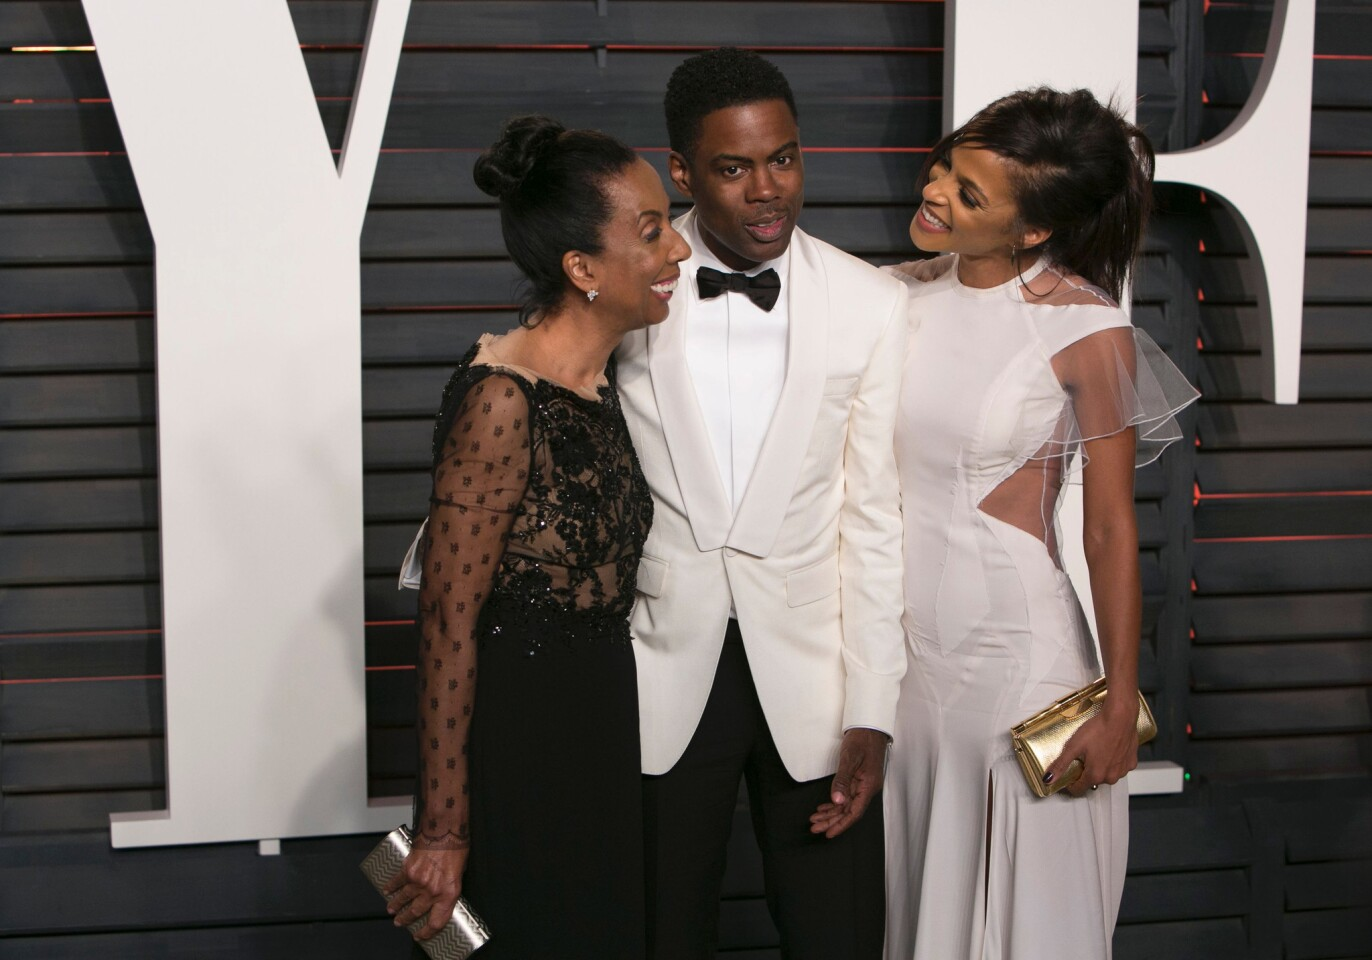 Oscars host Chris Rock poses with his wife, Malaak Compton Rock, right, and his mother, Rosalie Rock.